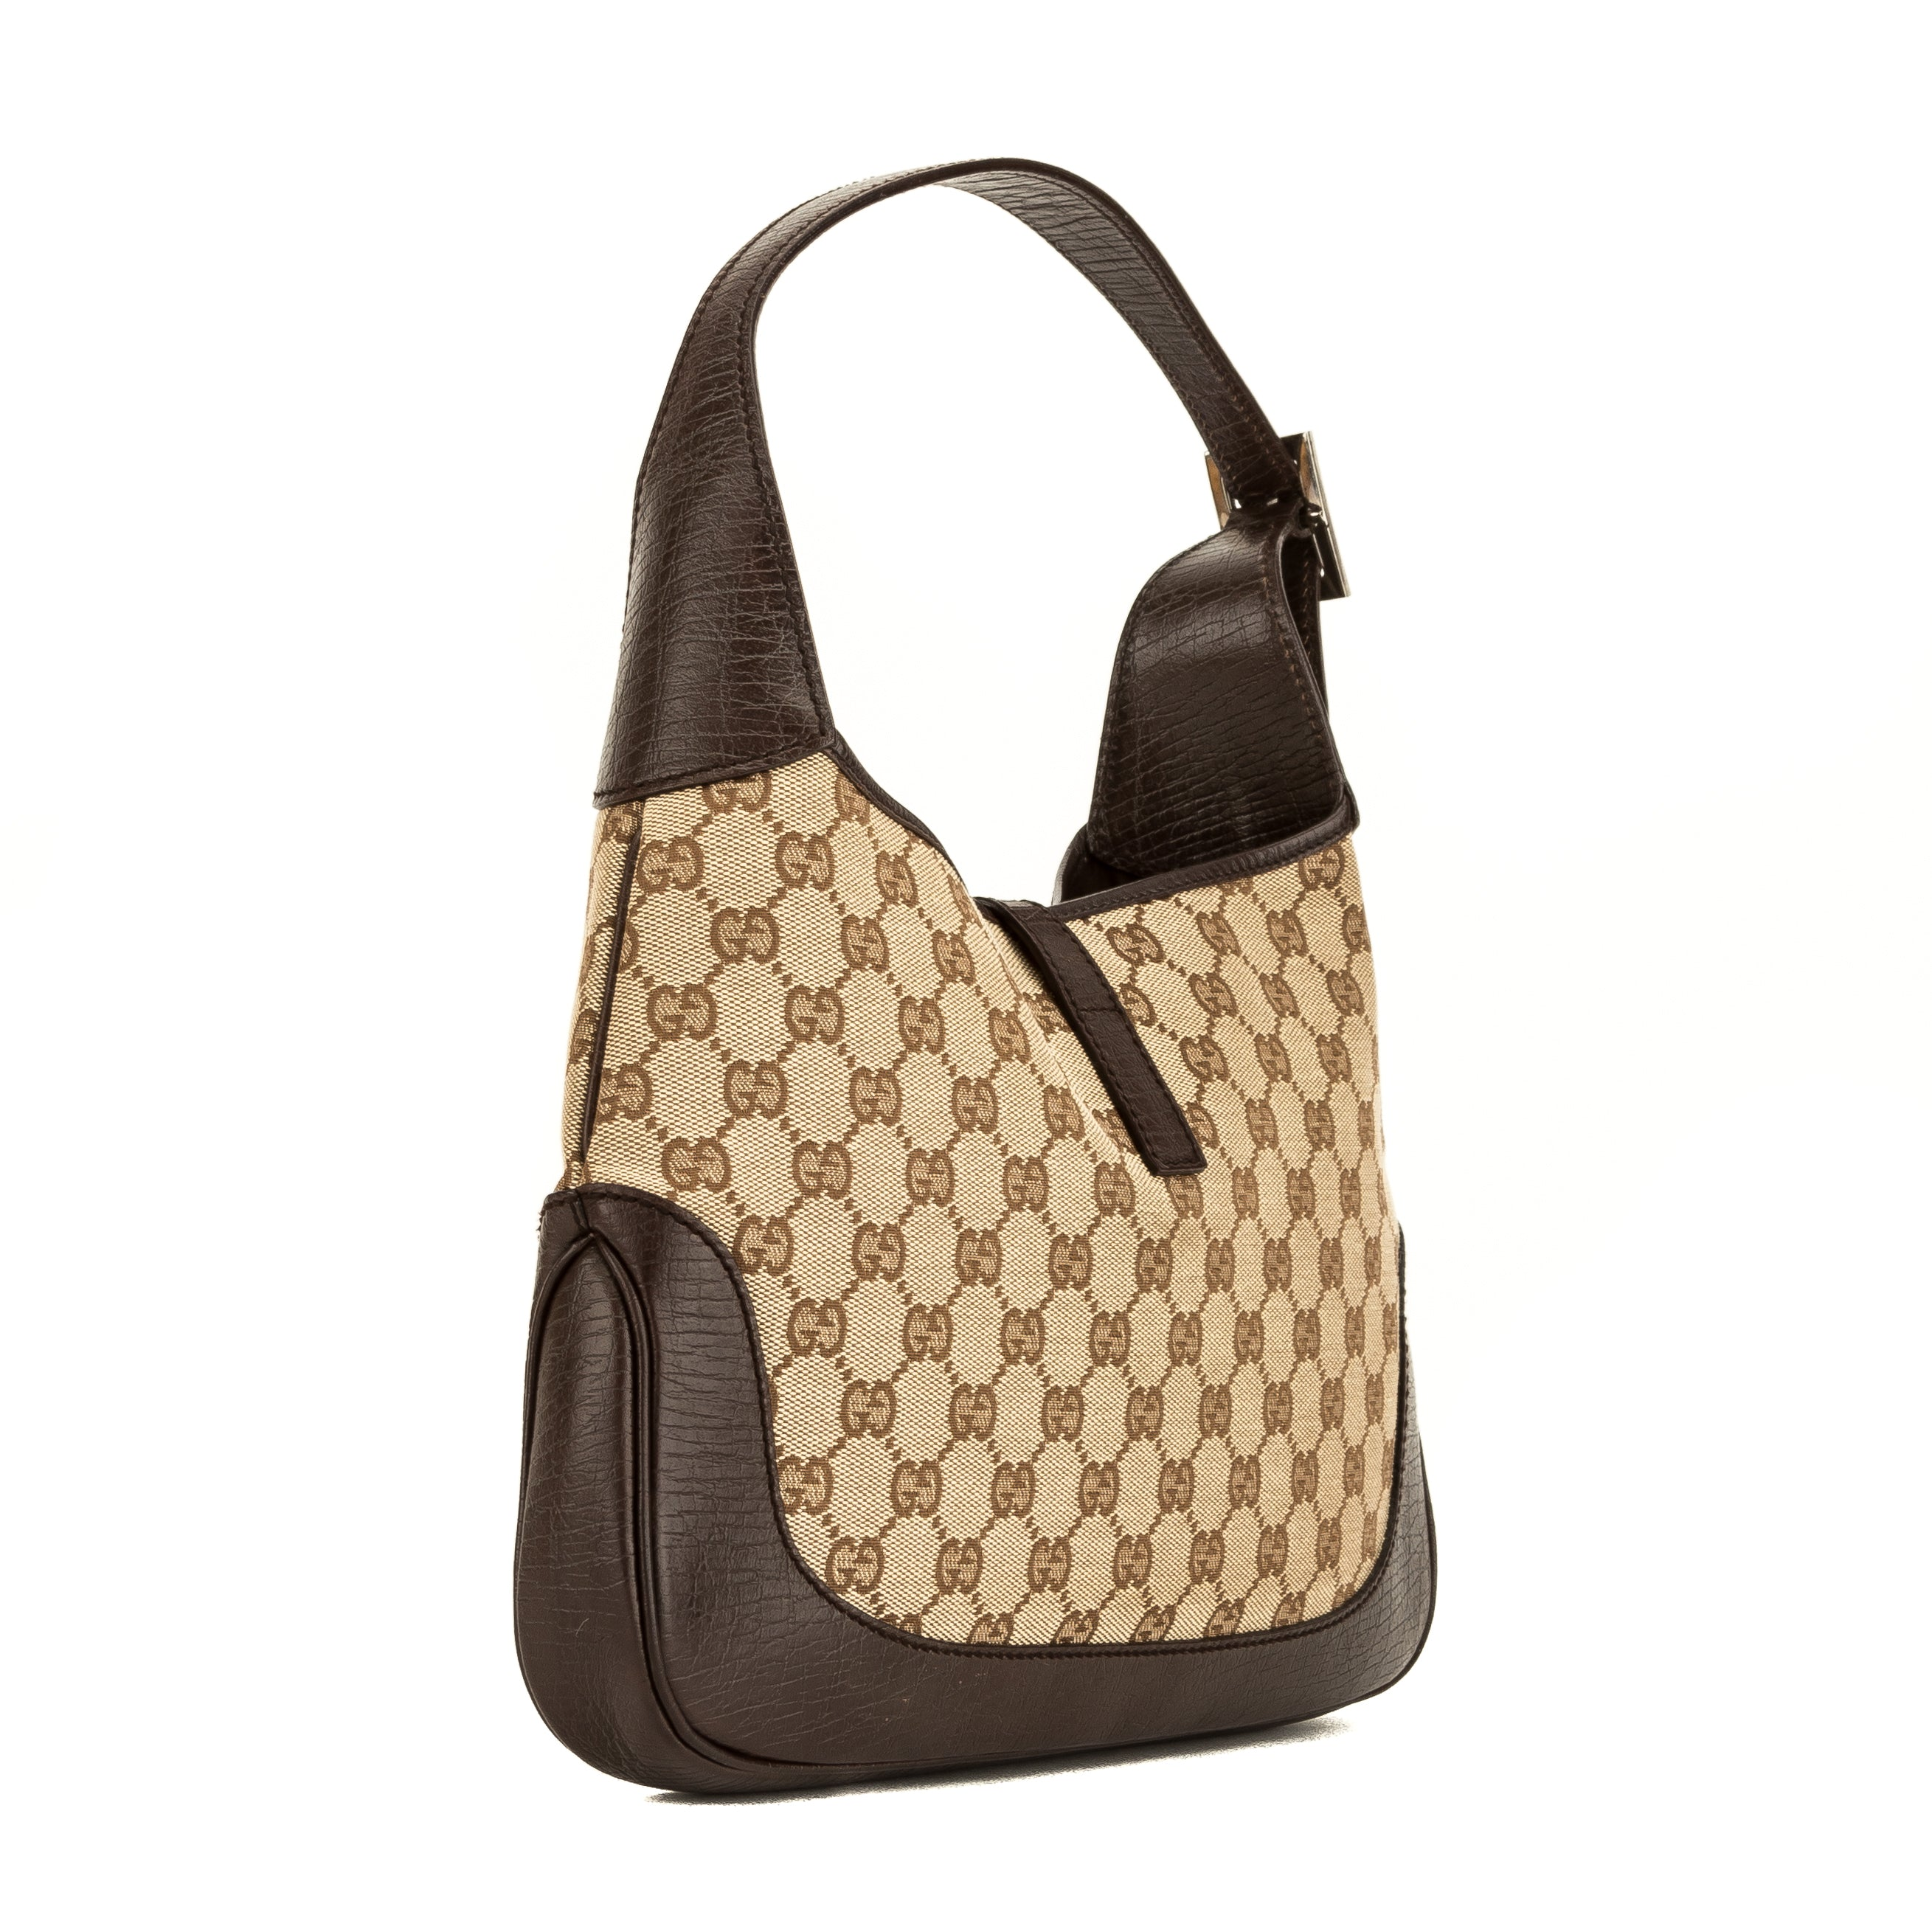 4dab1f2dcbef Gucci Beige GG Canvas Jackie O Hobo (4056005) - 4056005 | LuxeDH